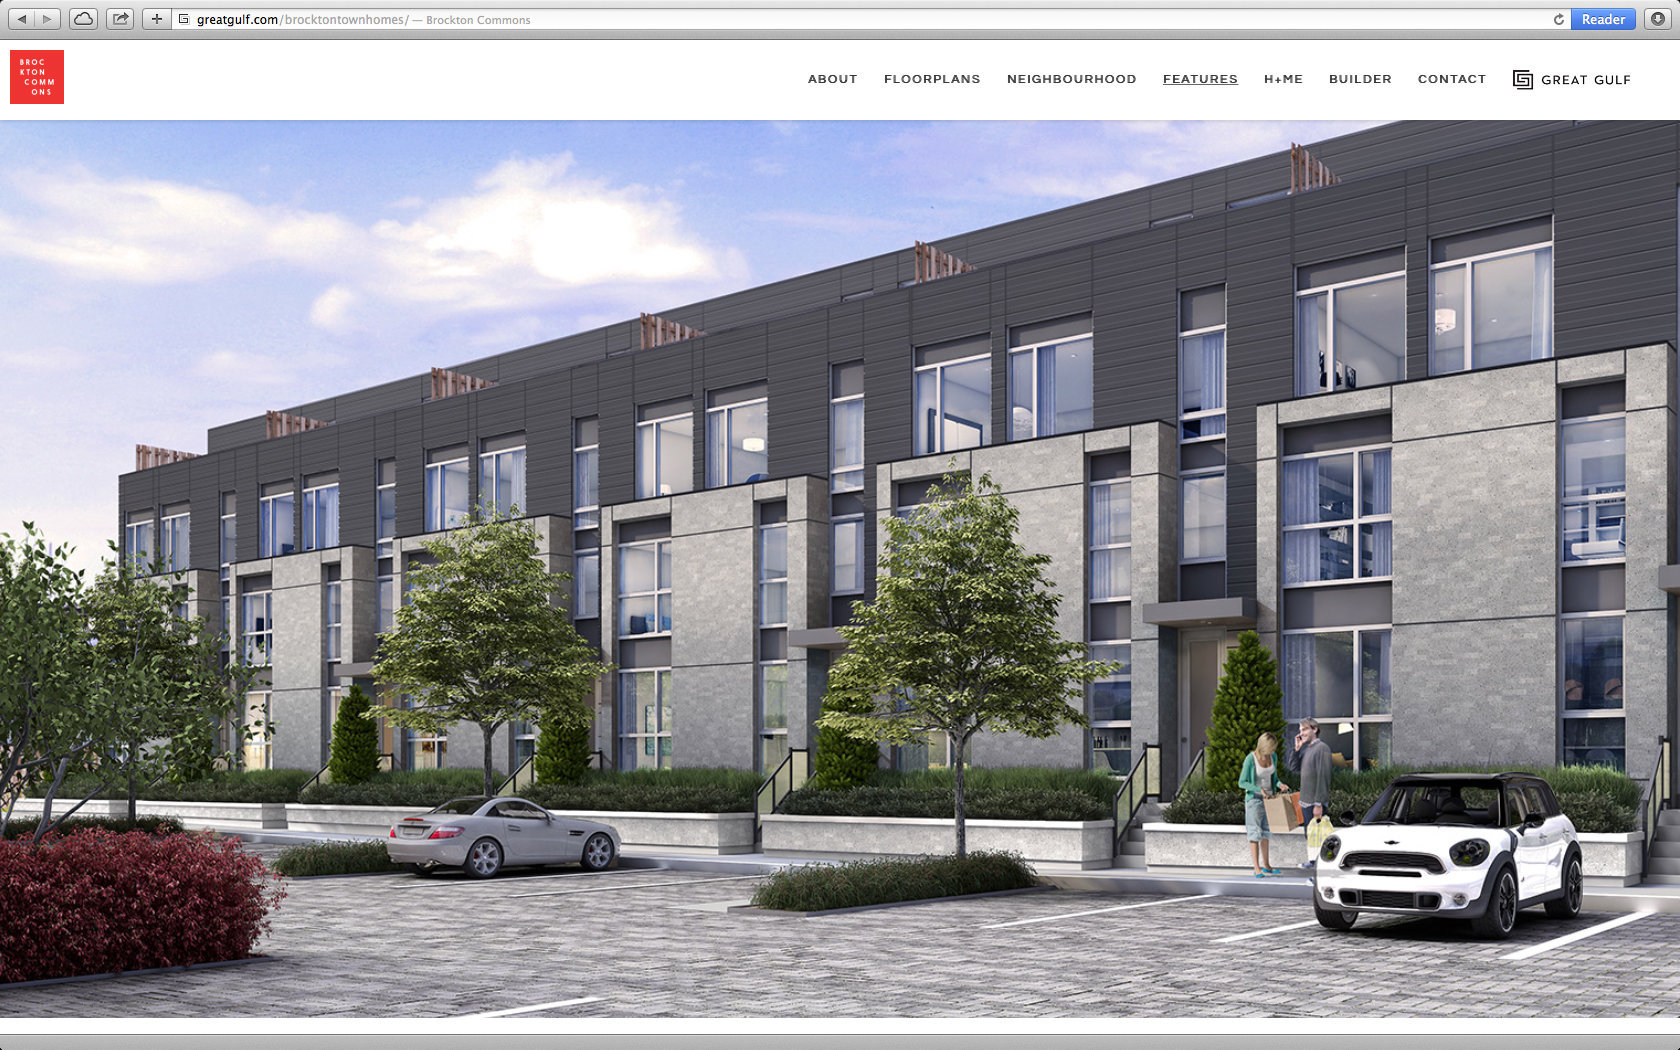 BROCKTON COMMONS TOWNHOMES WEBSITE  12/13